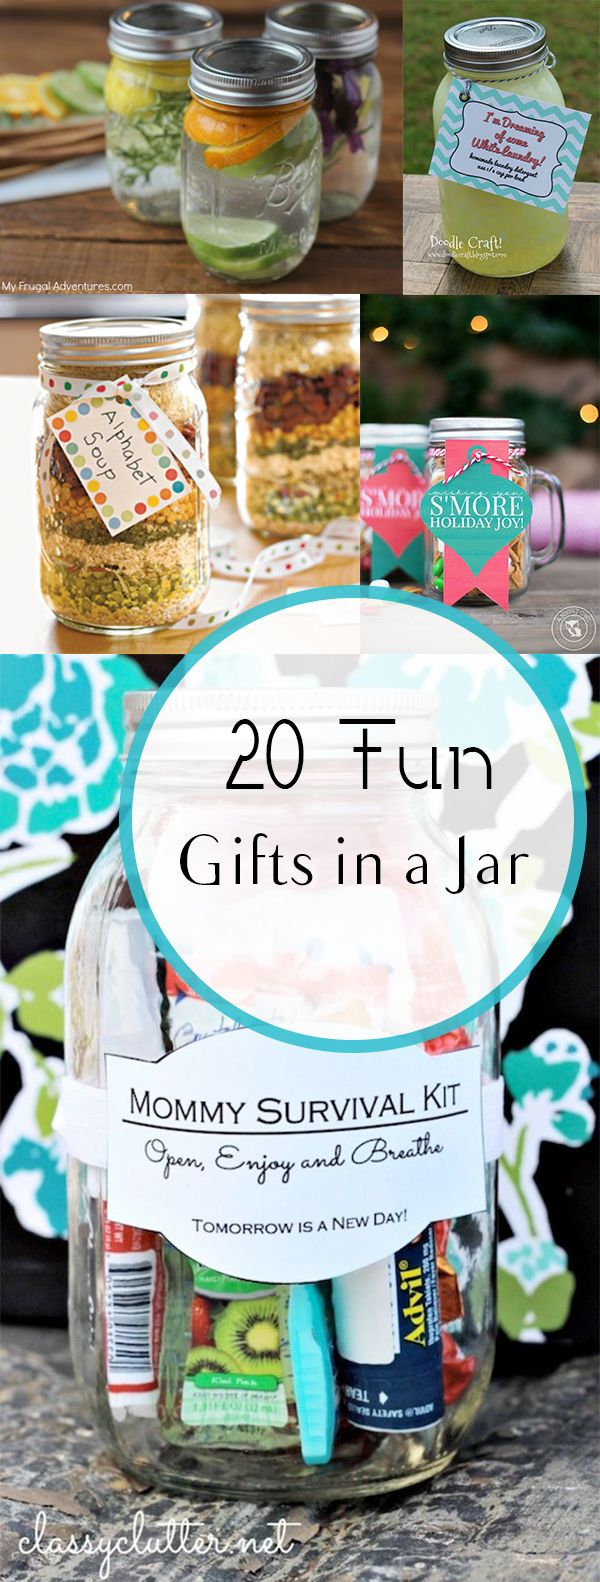 20 Fun Gifts in a Jar